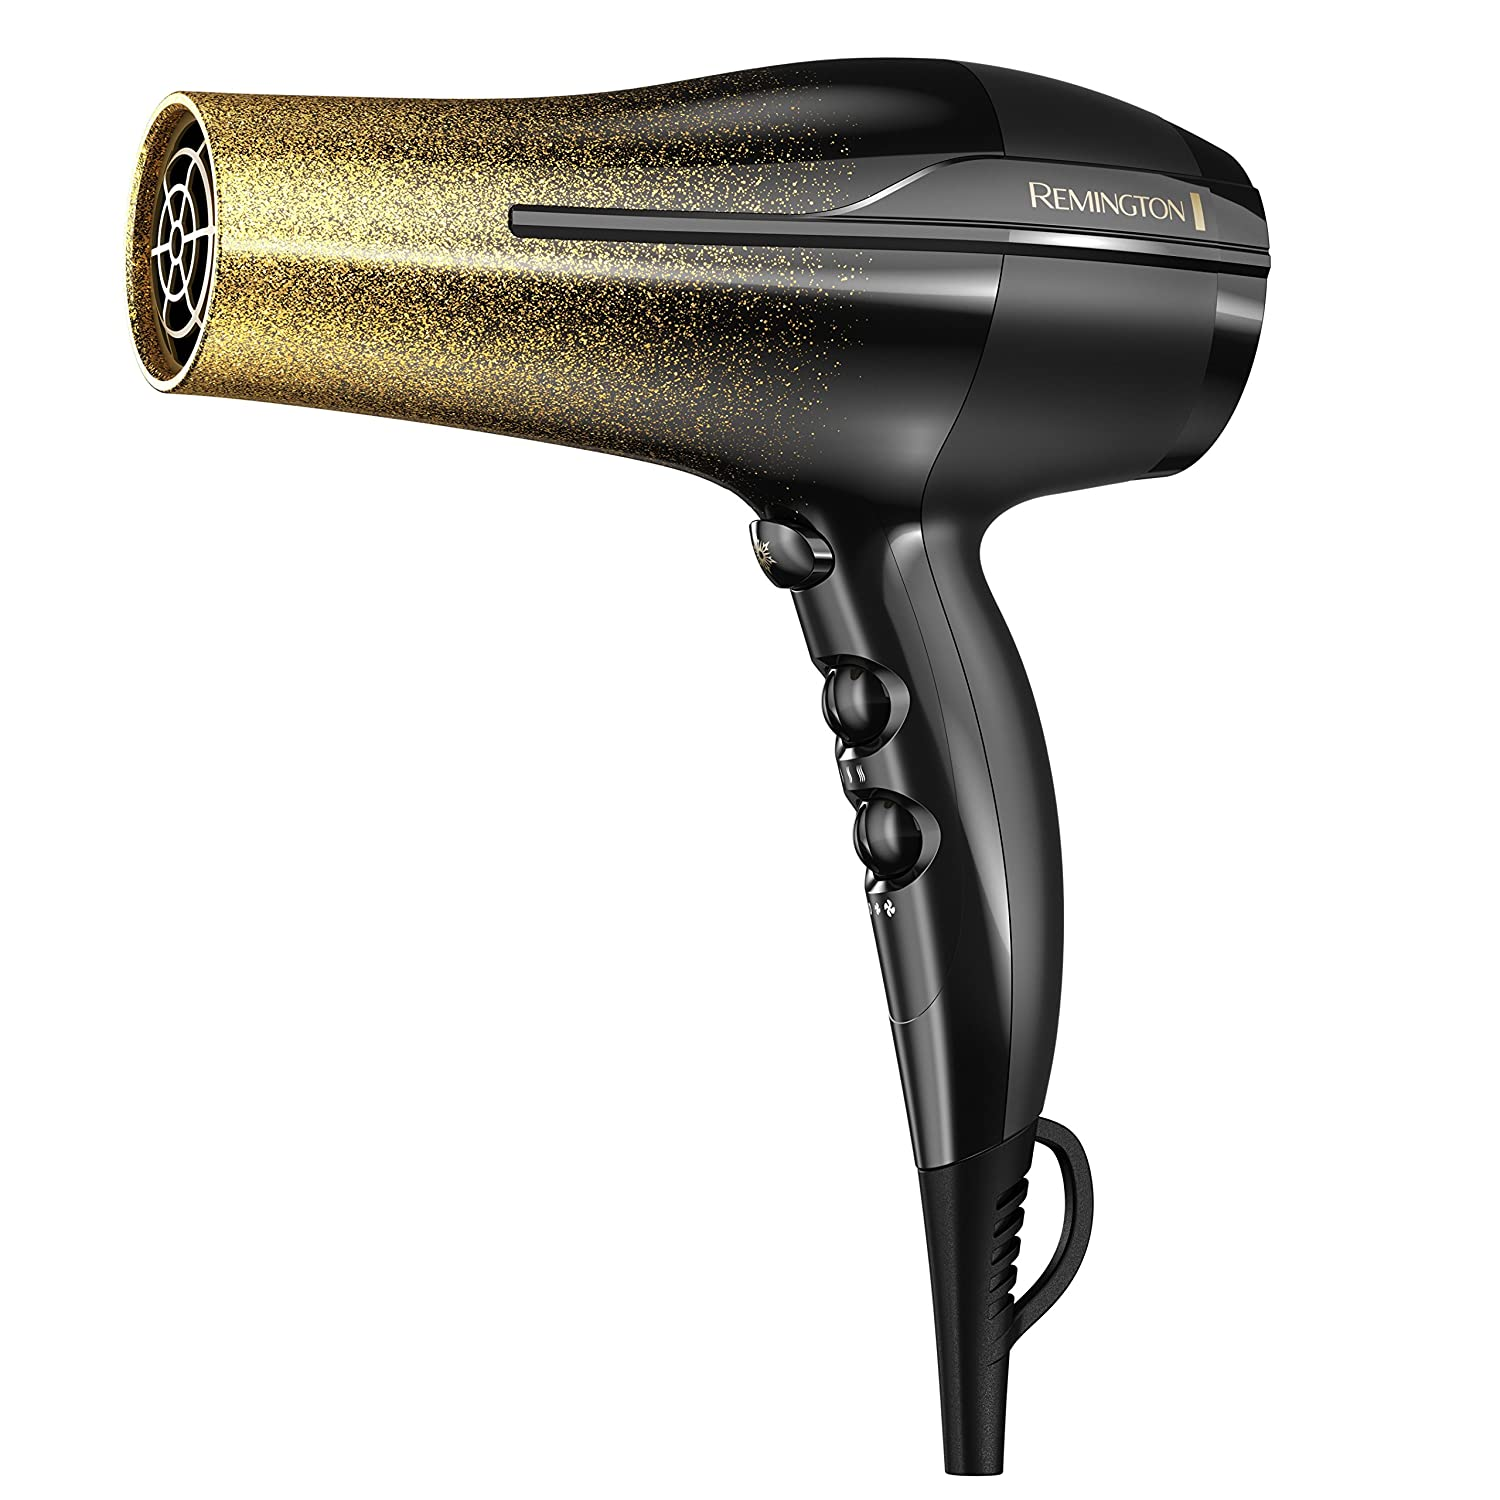 Remington Titanium Fast Dry Hair Dryer with Ionic and Ceramic Technology, Black & Gold Glitter, D5951 Remington Products